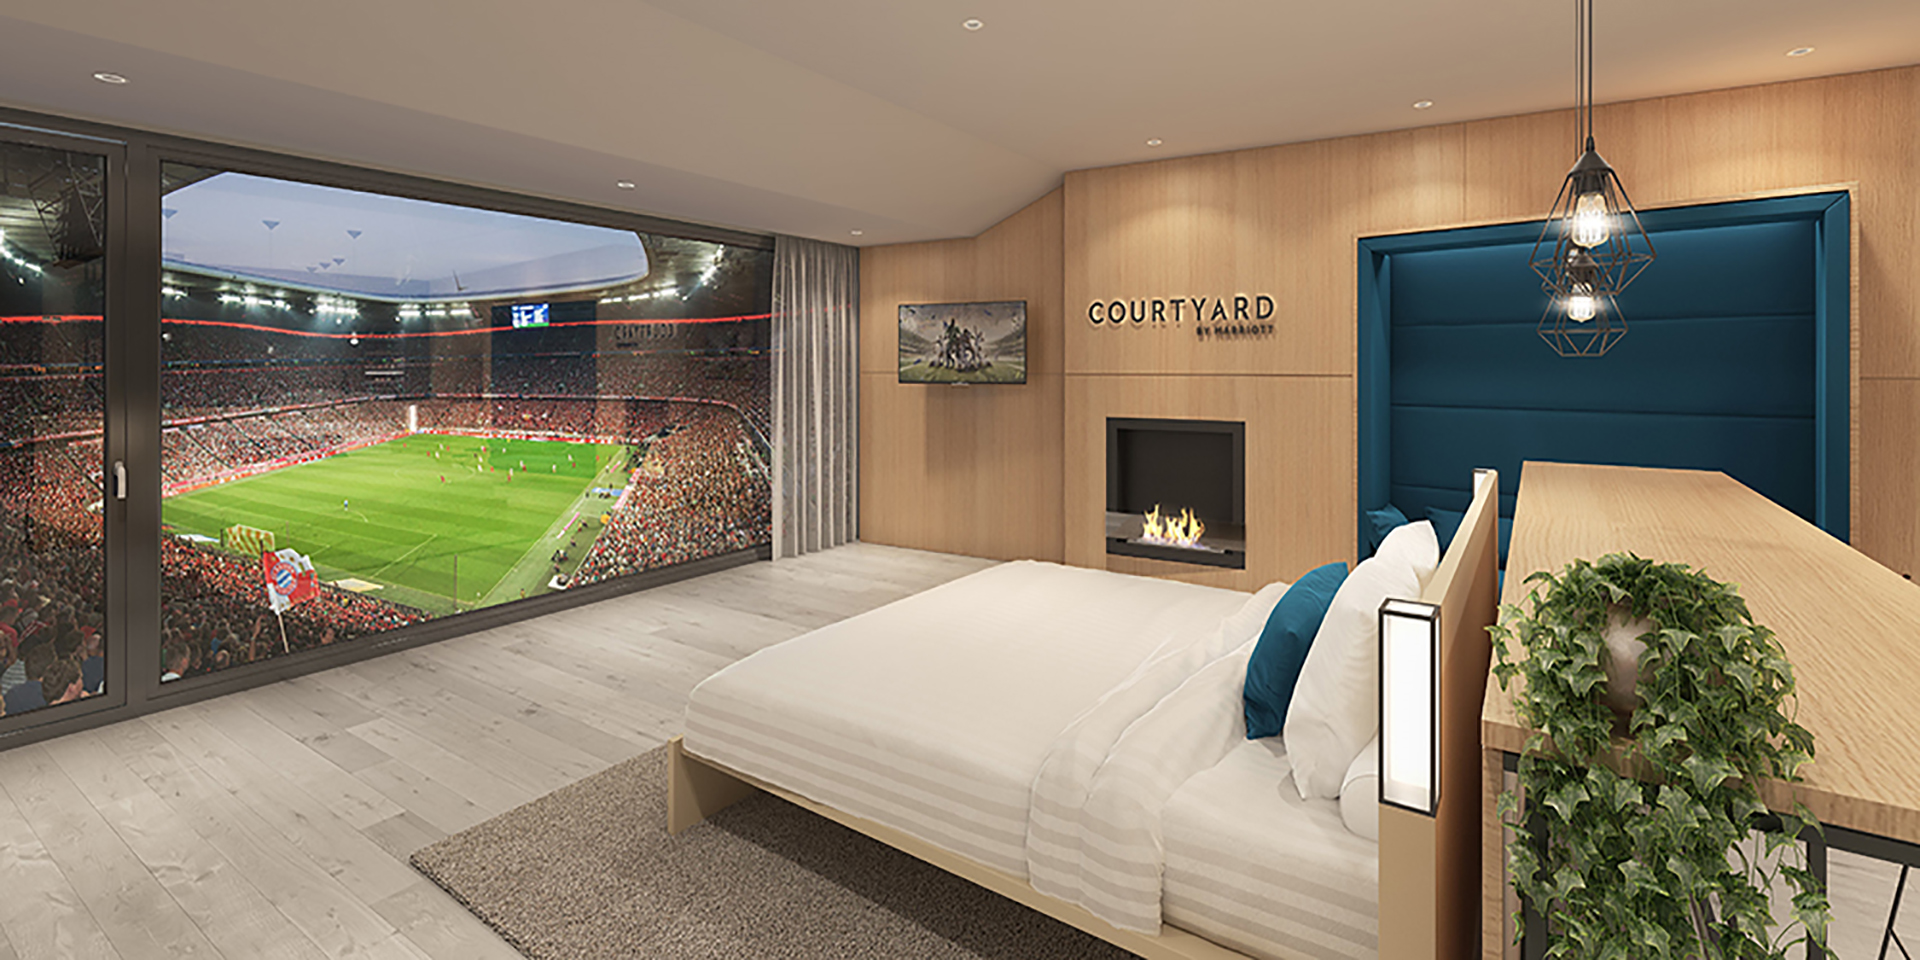 Courtyard-x-Bayern-Munich-box-rendering-3.jpg